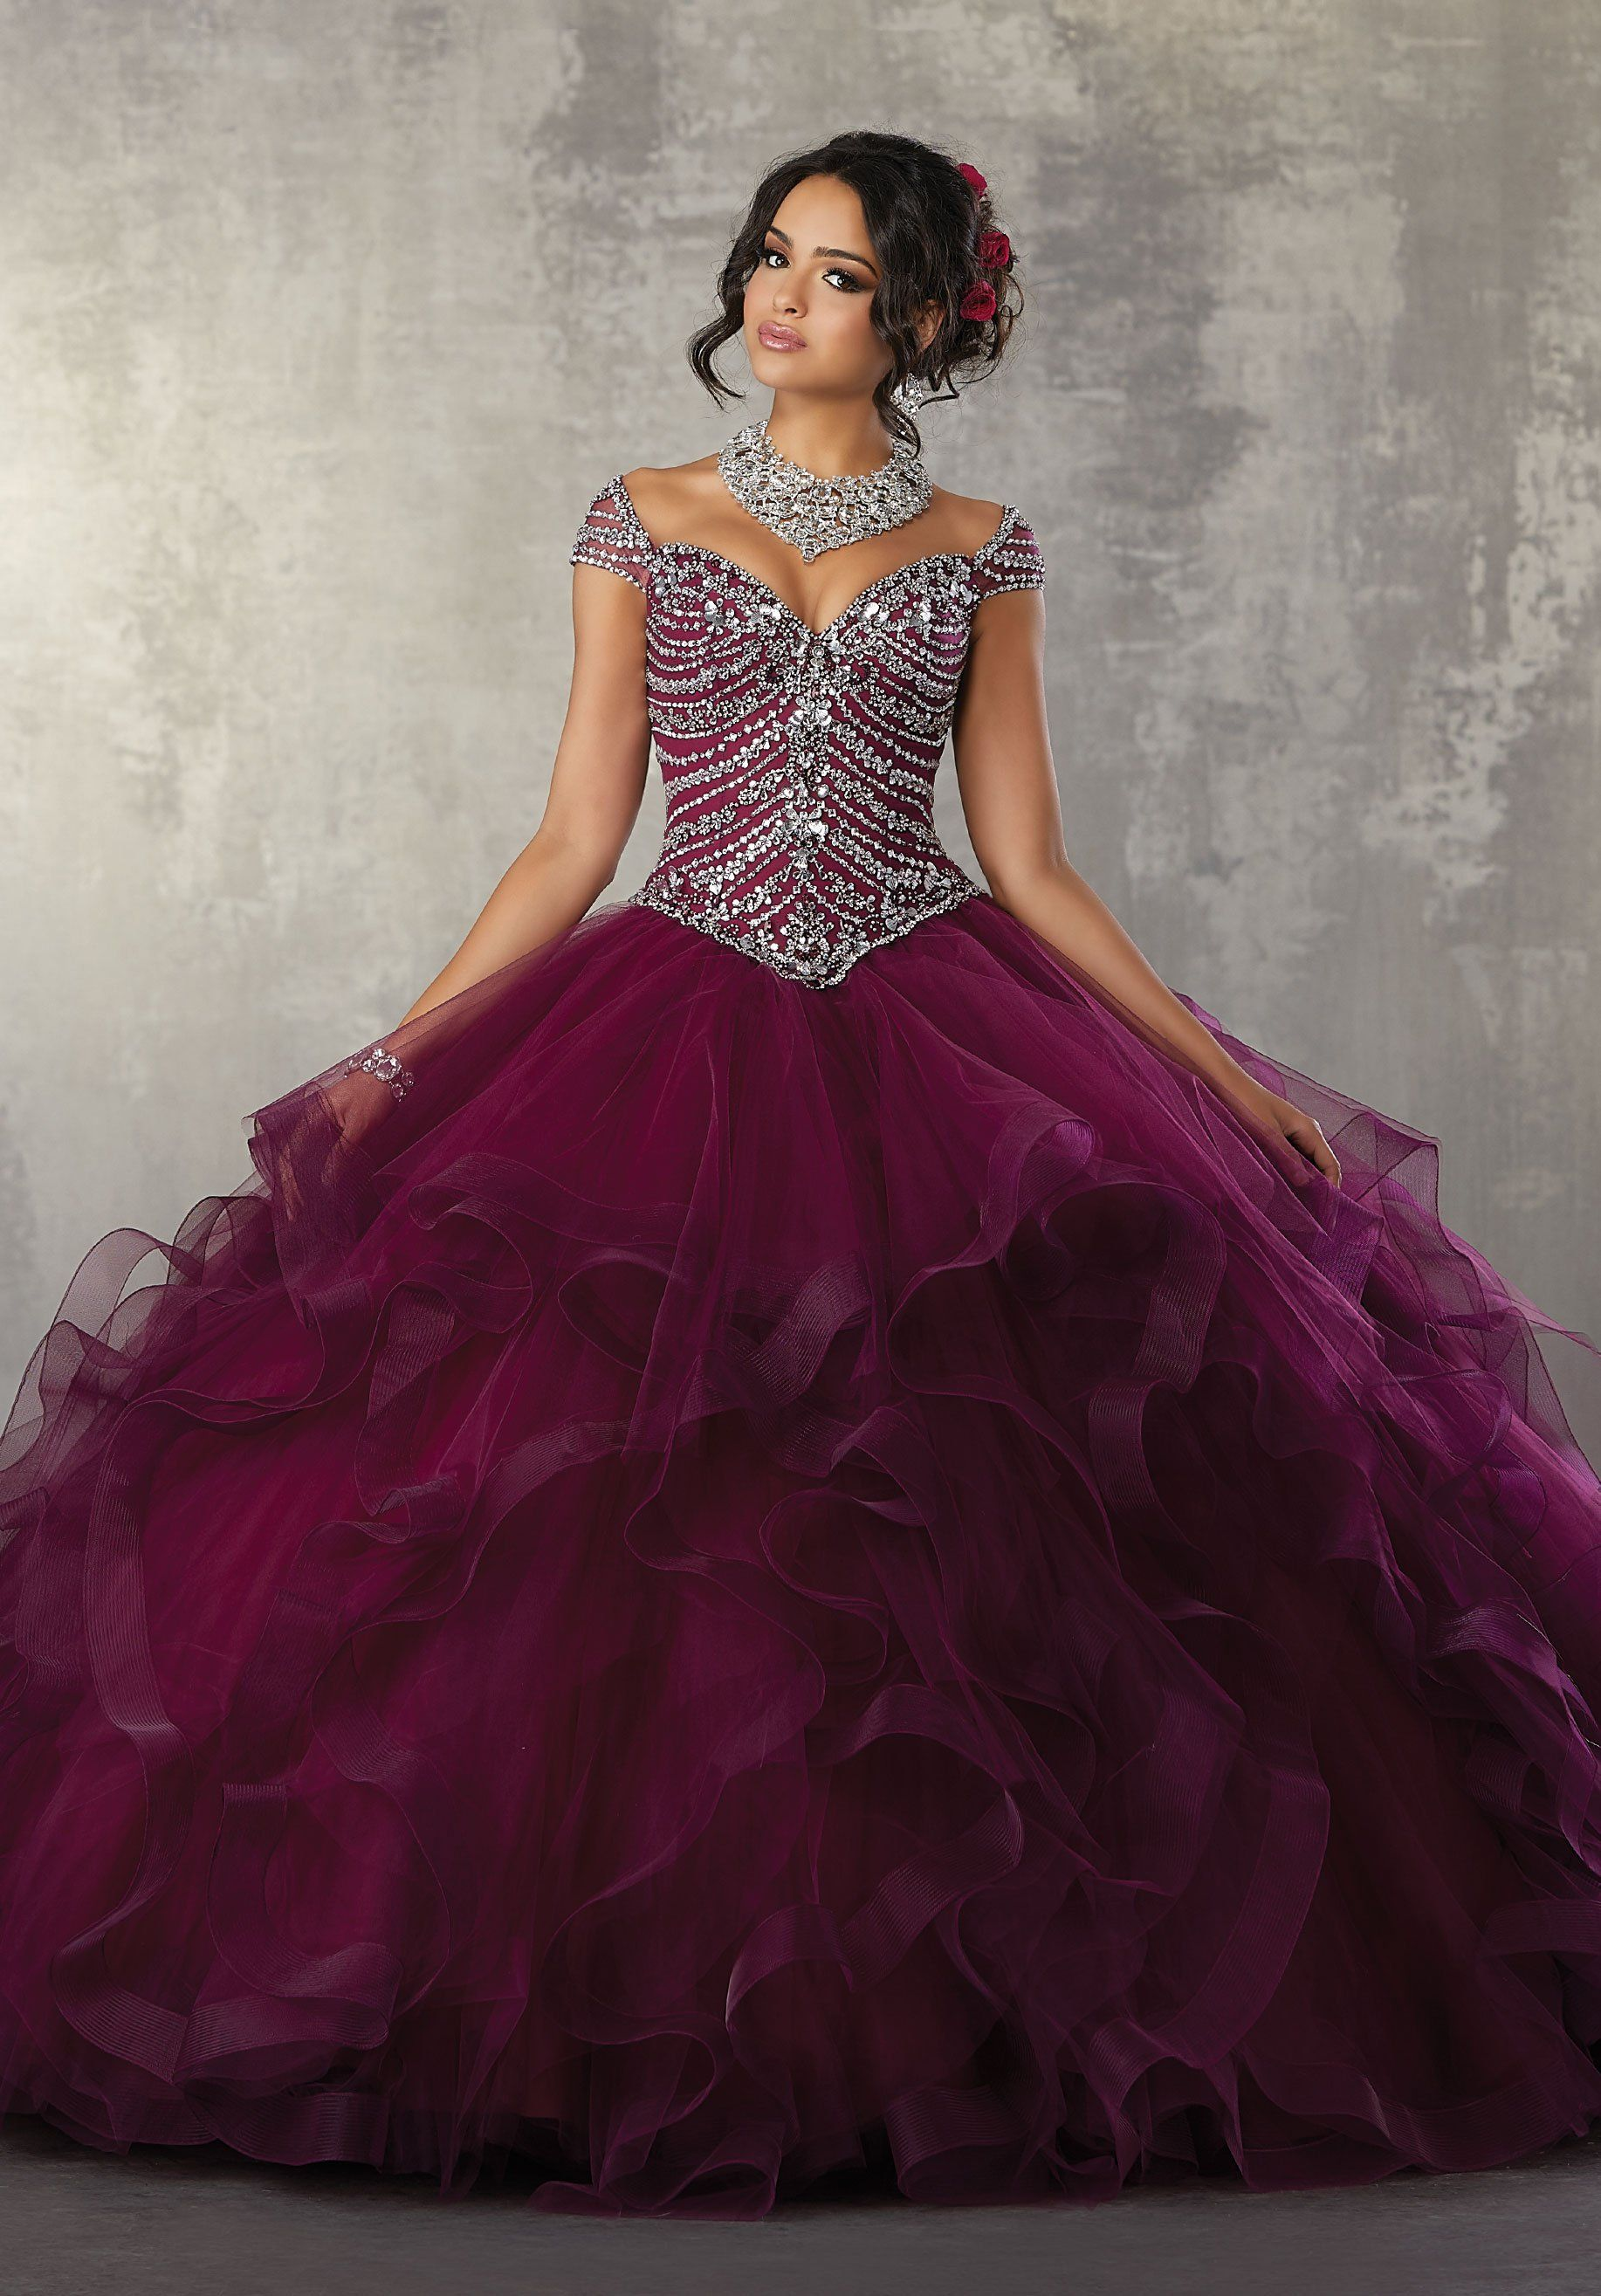 f104bfff911 Off the Shoulder Quinceanera Dress by Mori Lee Vizcaya 89162 .